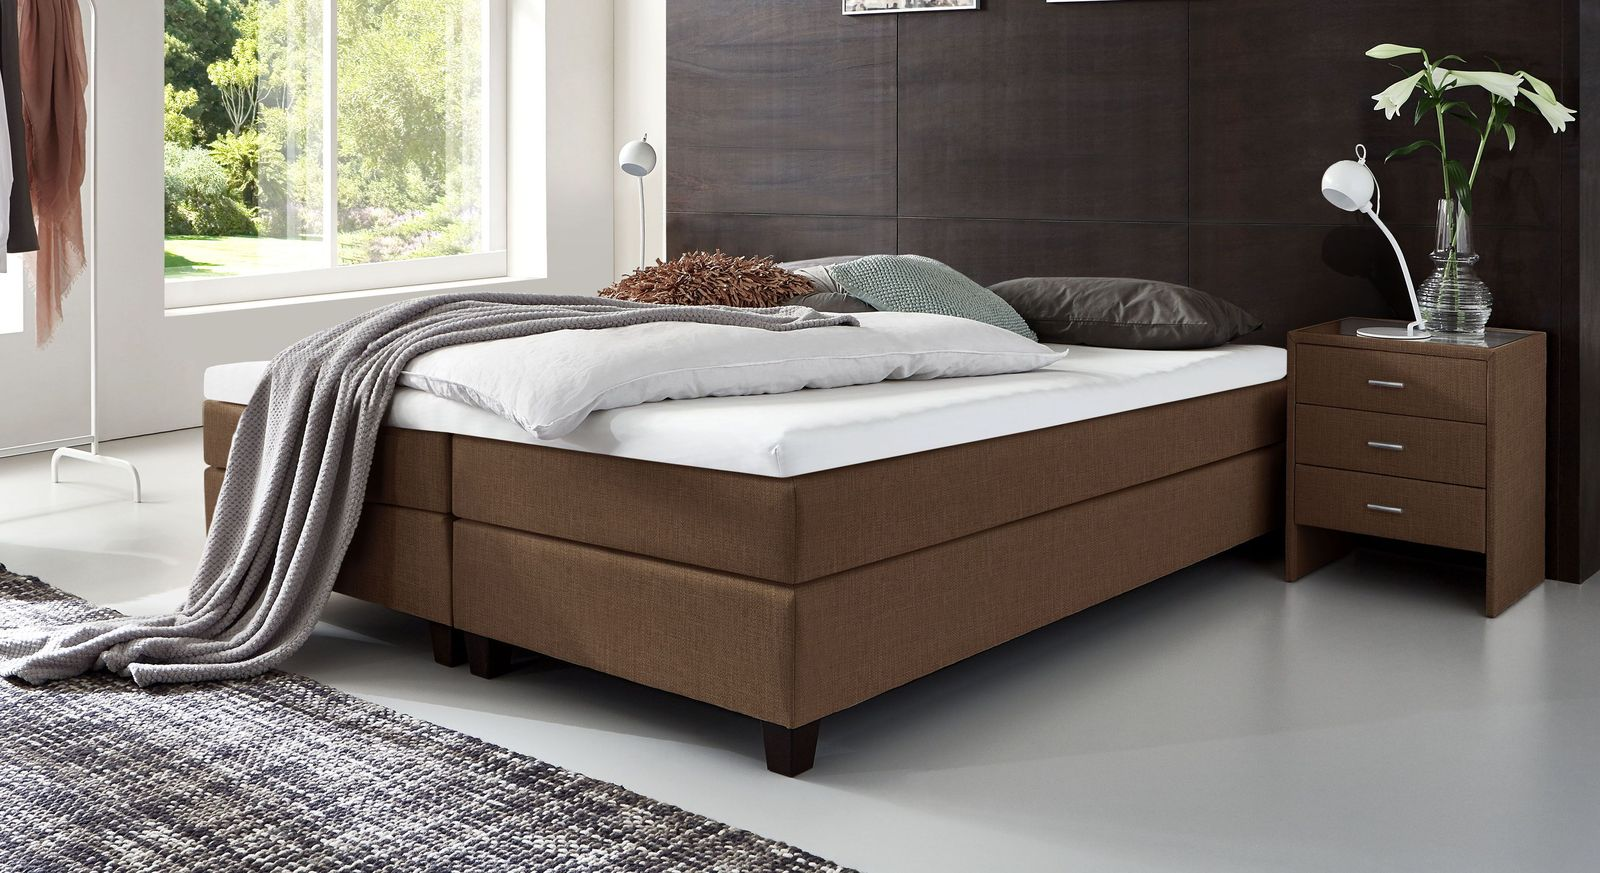 53 cm hohe Boxspringliege Luciano aus meliertem Webstoff in Braun